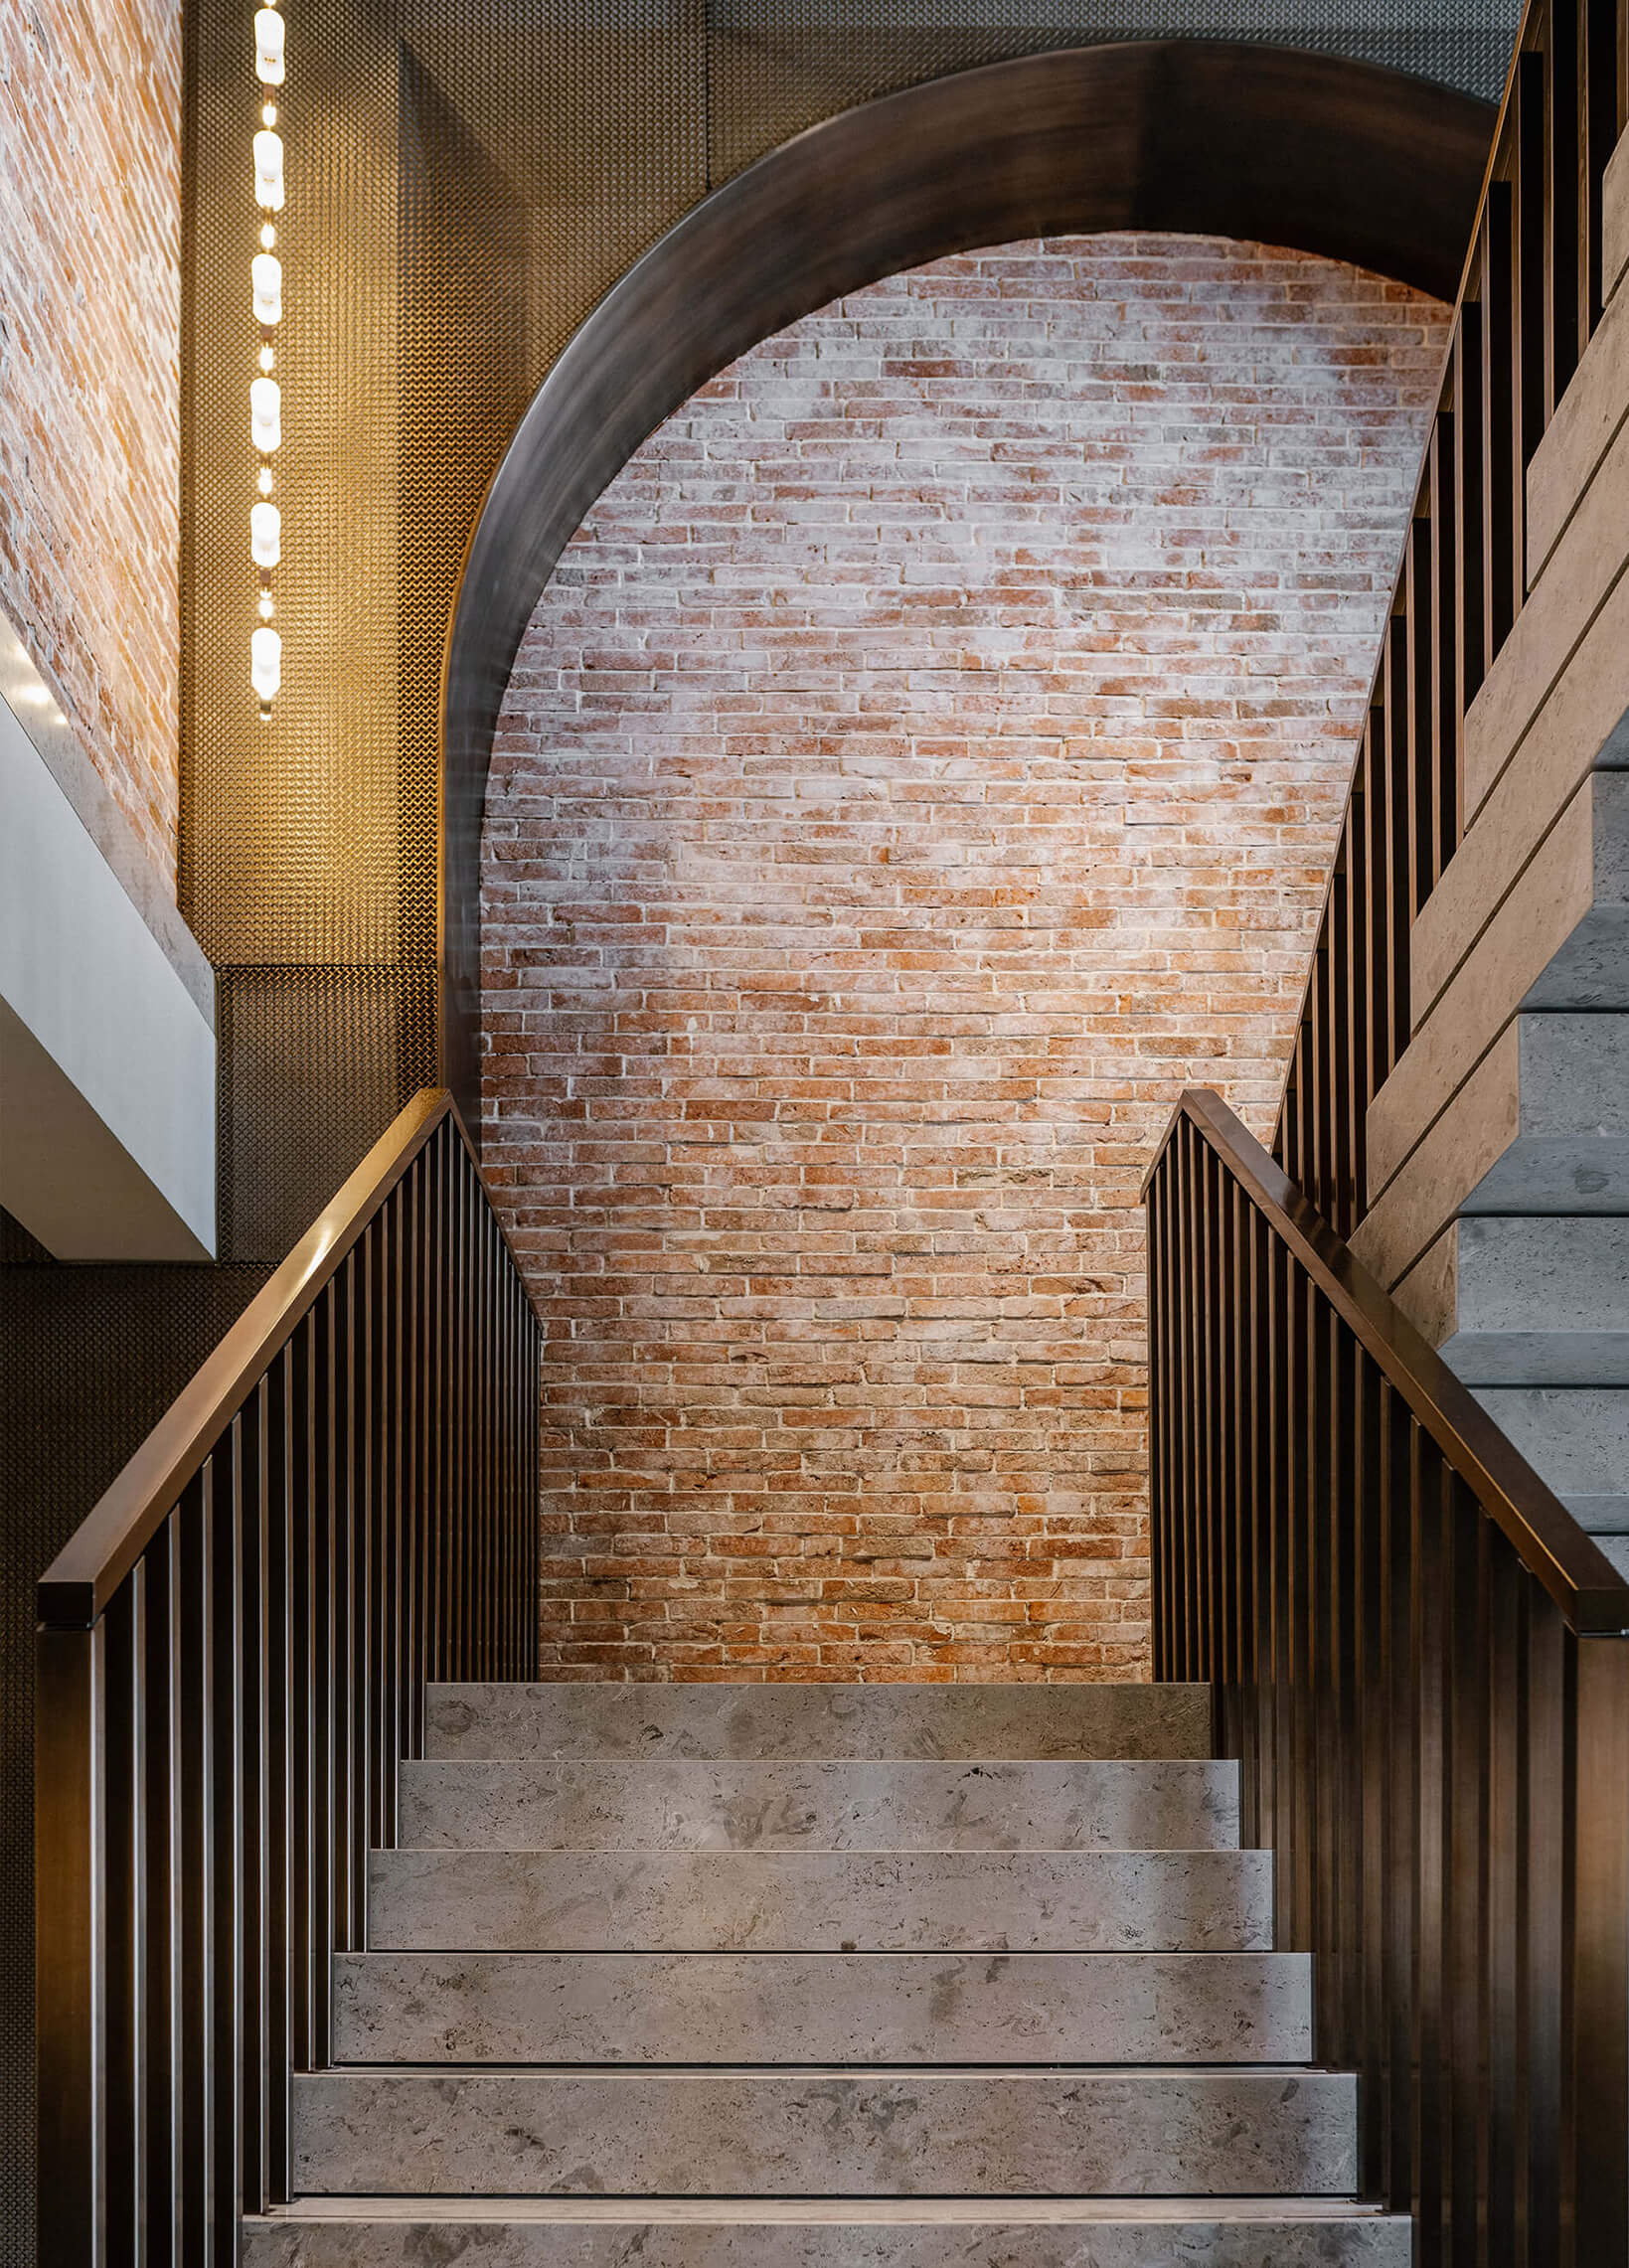 Bronze arches and double height stairway sit against exposed brick walls | House of Madison designed by via. | STIRworld